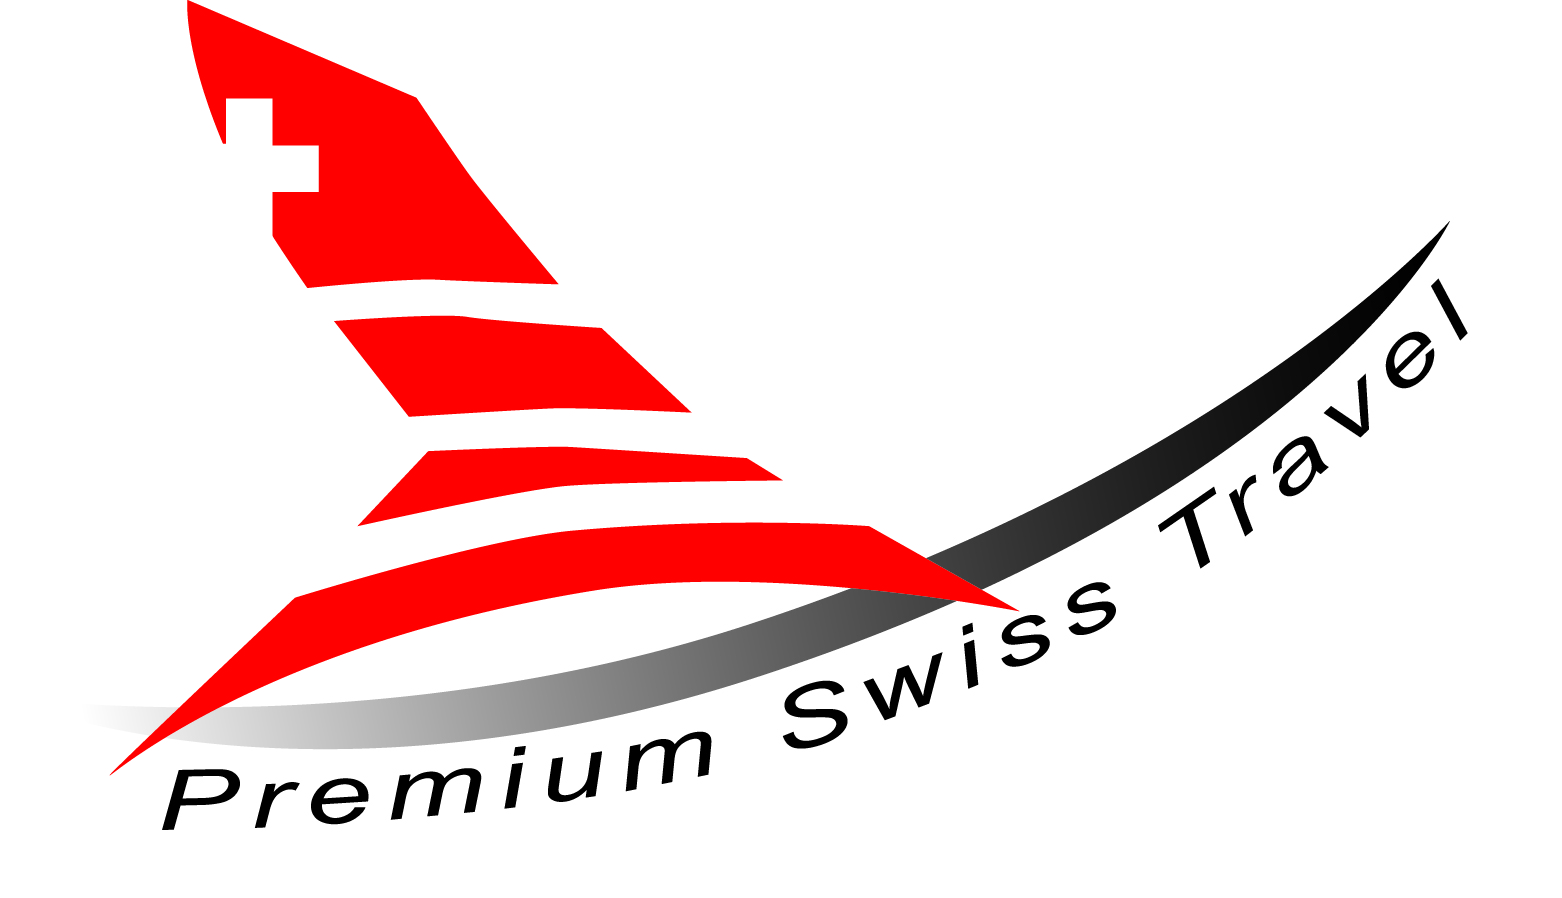 Premium Swiss Travel | City Archives - Premium Swiss Travel